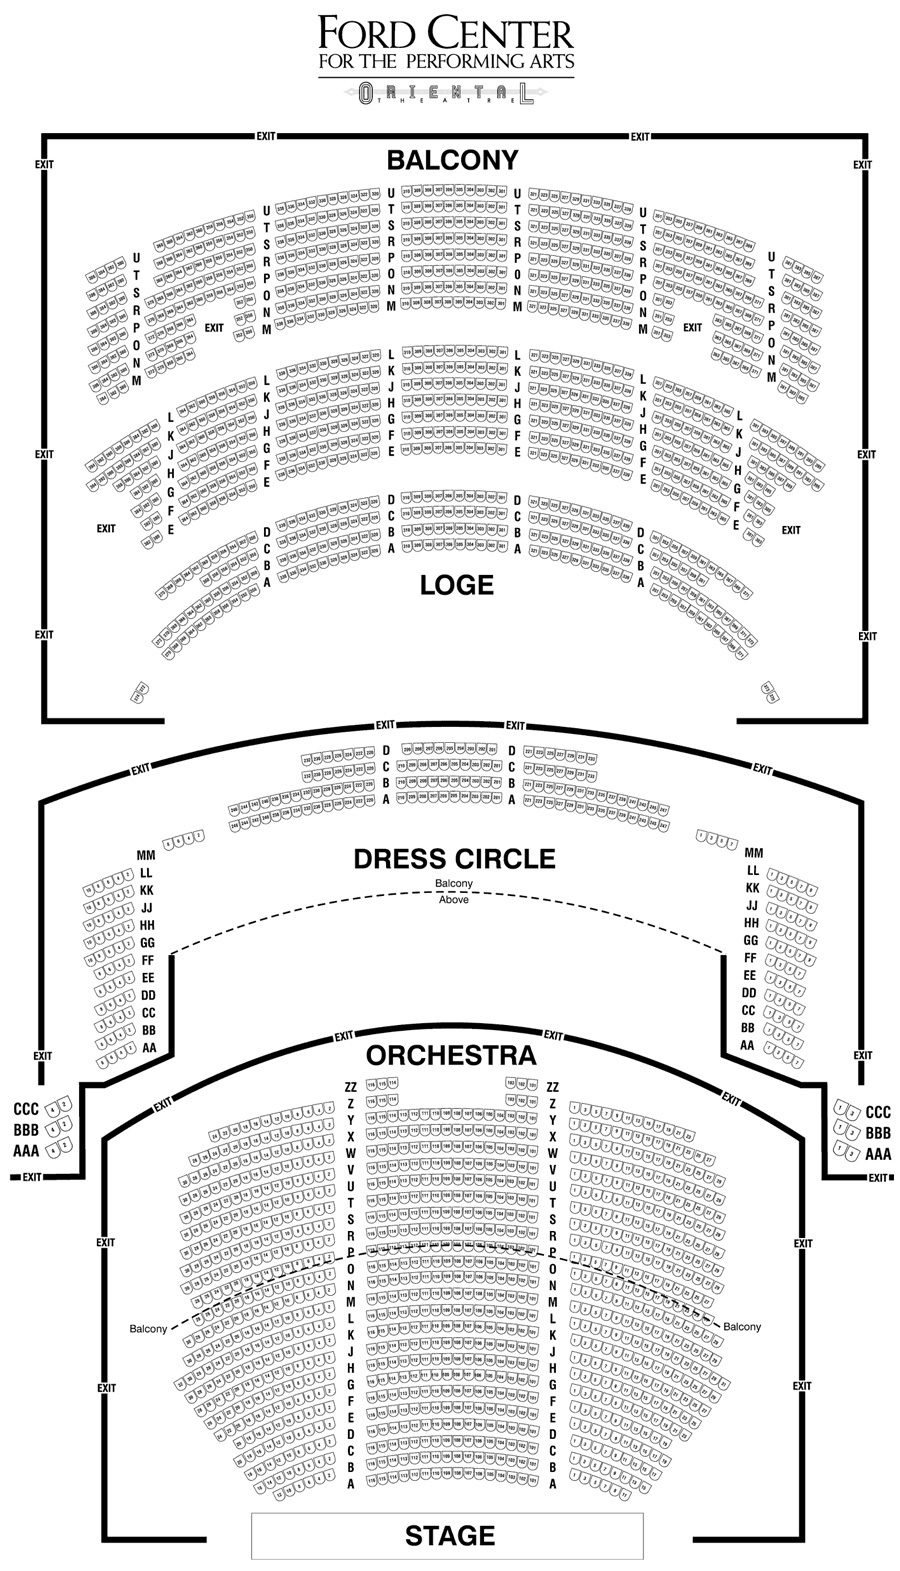 Ford Center Oriental Theatre Seating Chart